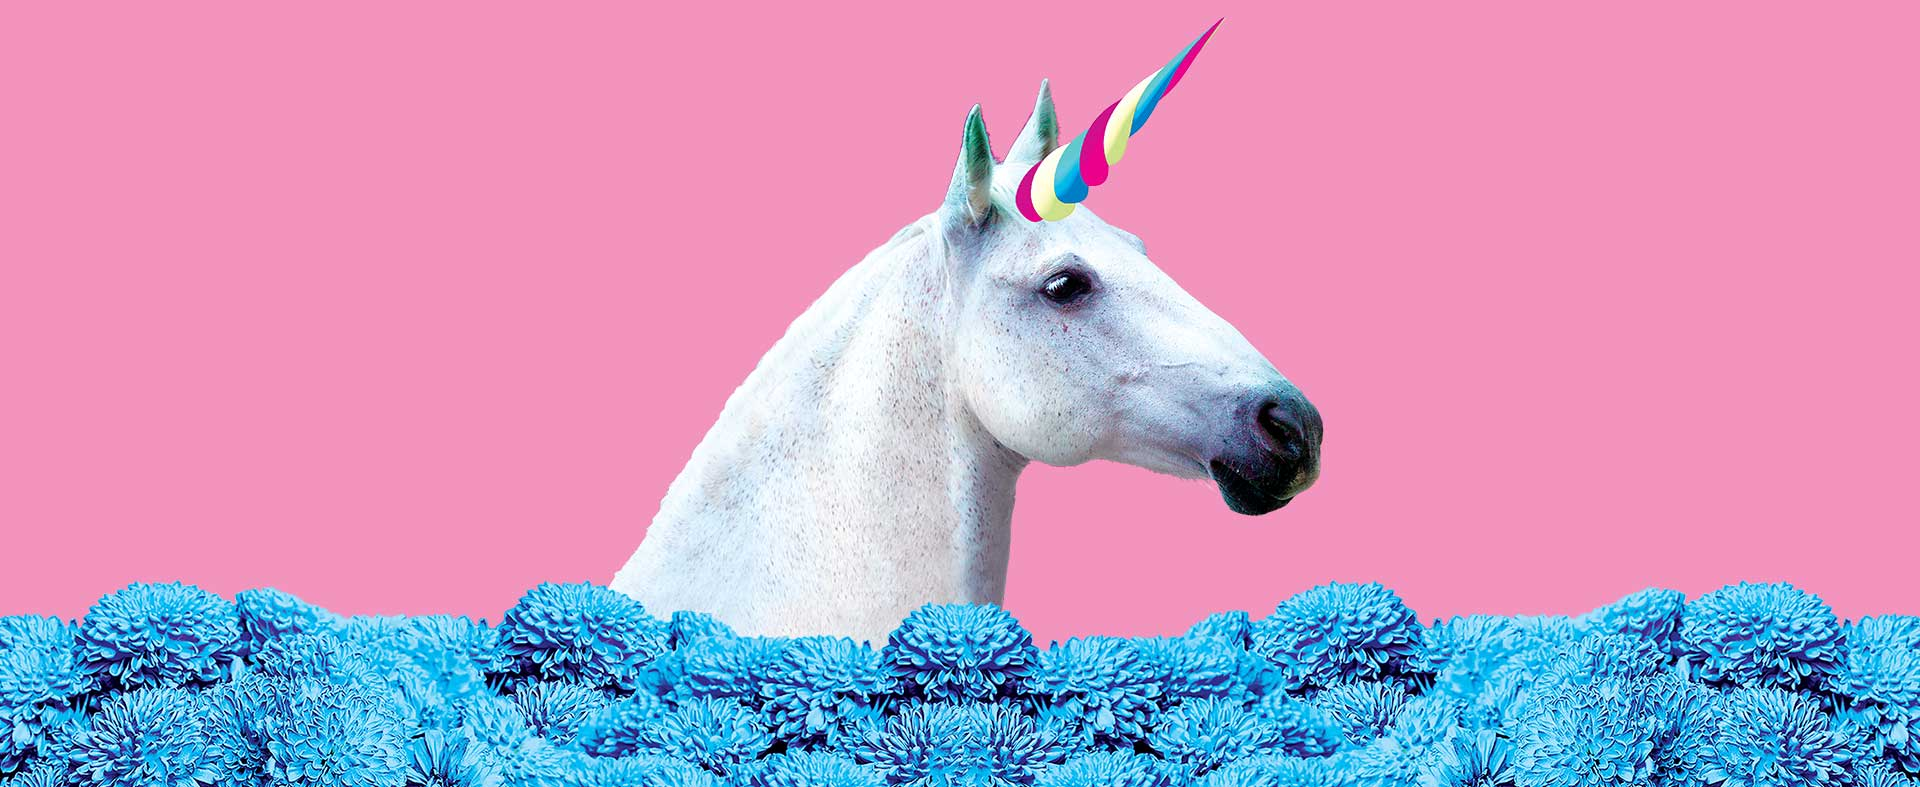 Unicorn with blue flowers